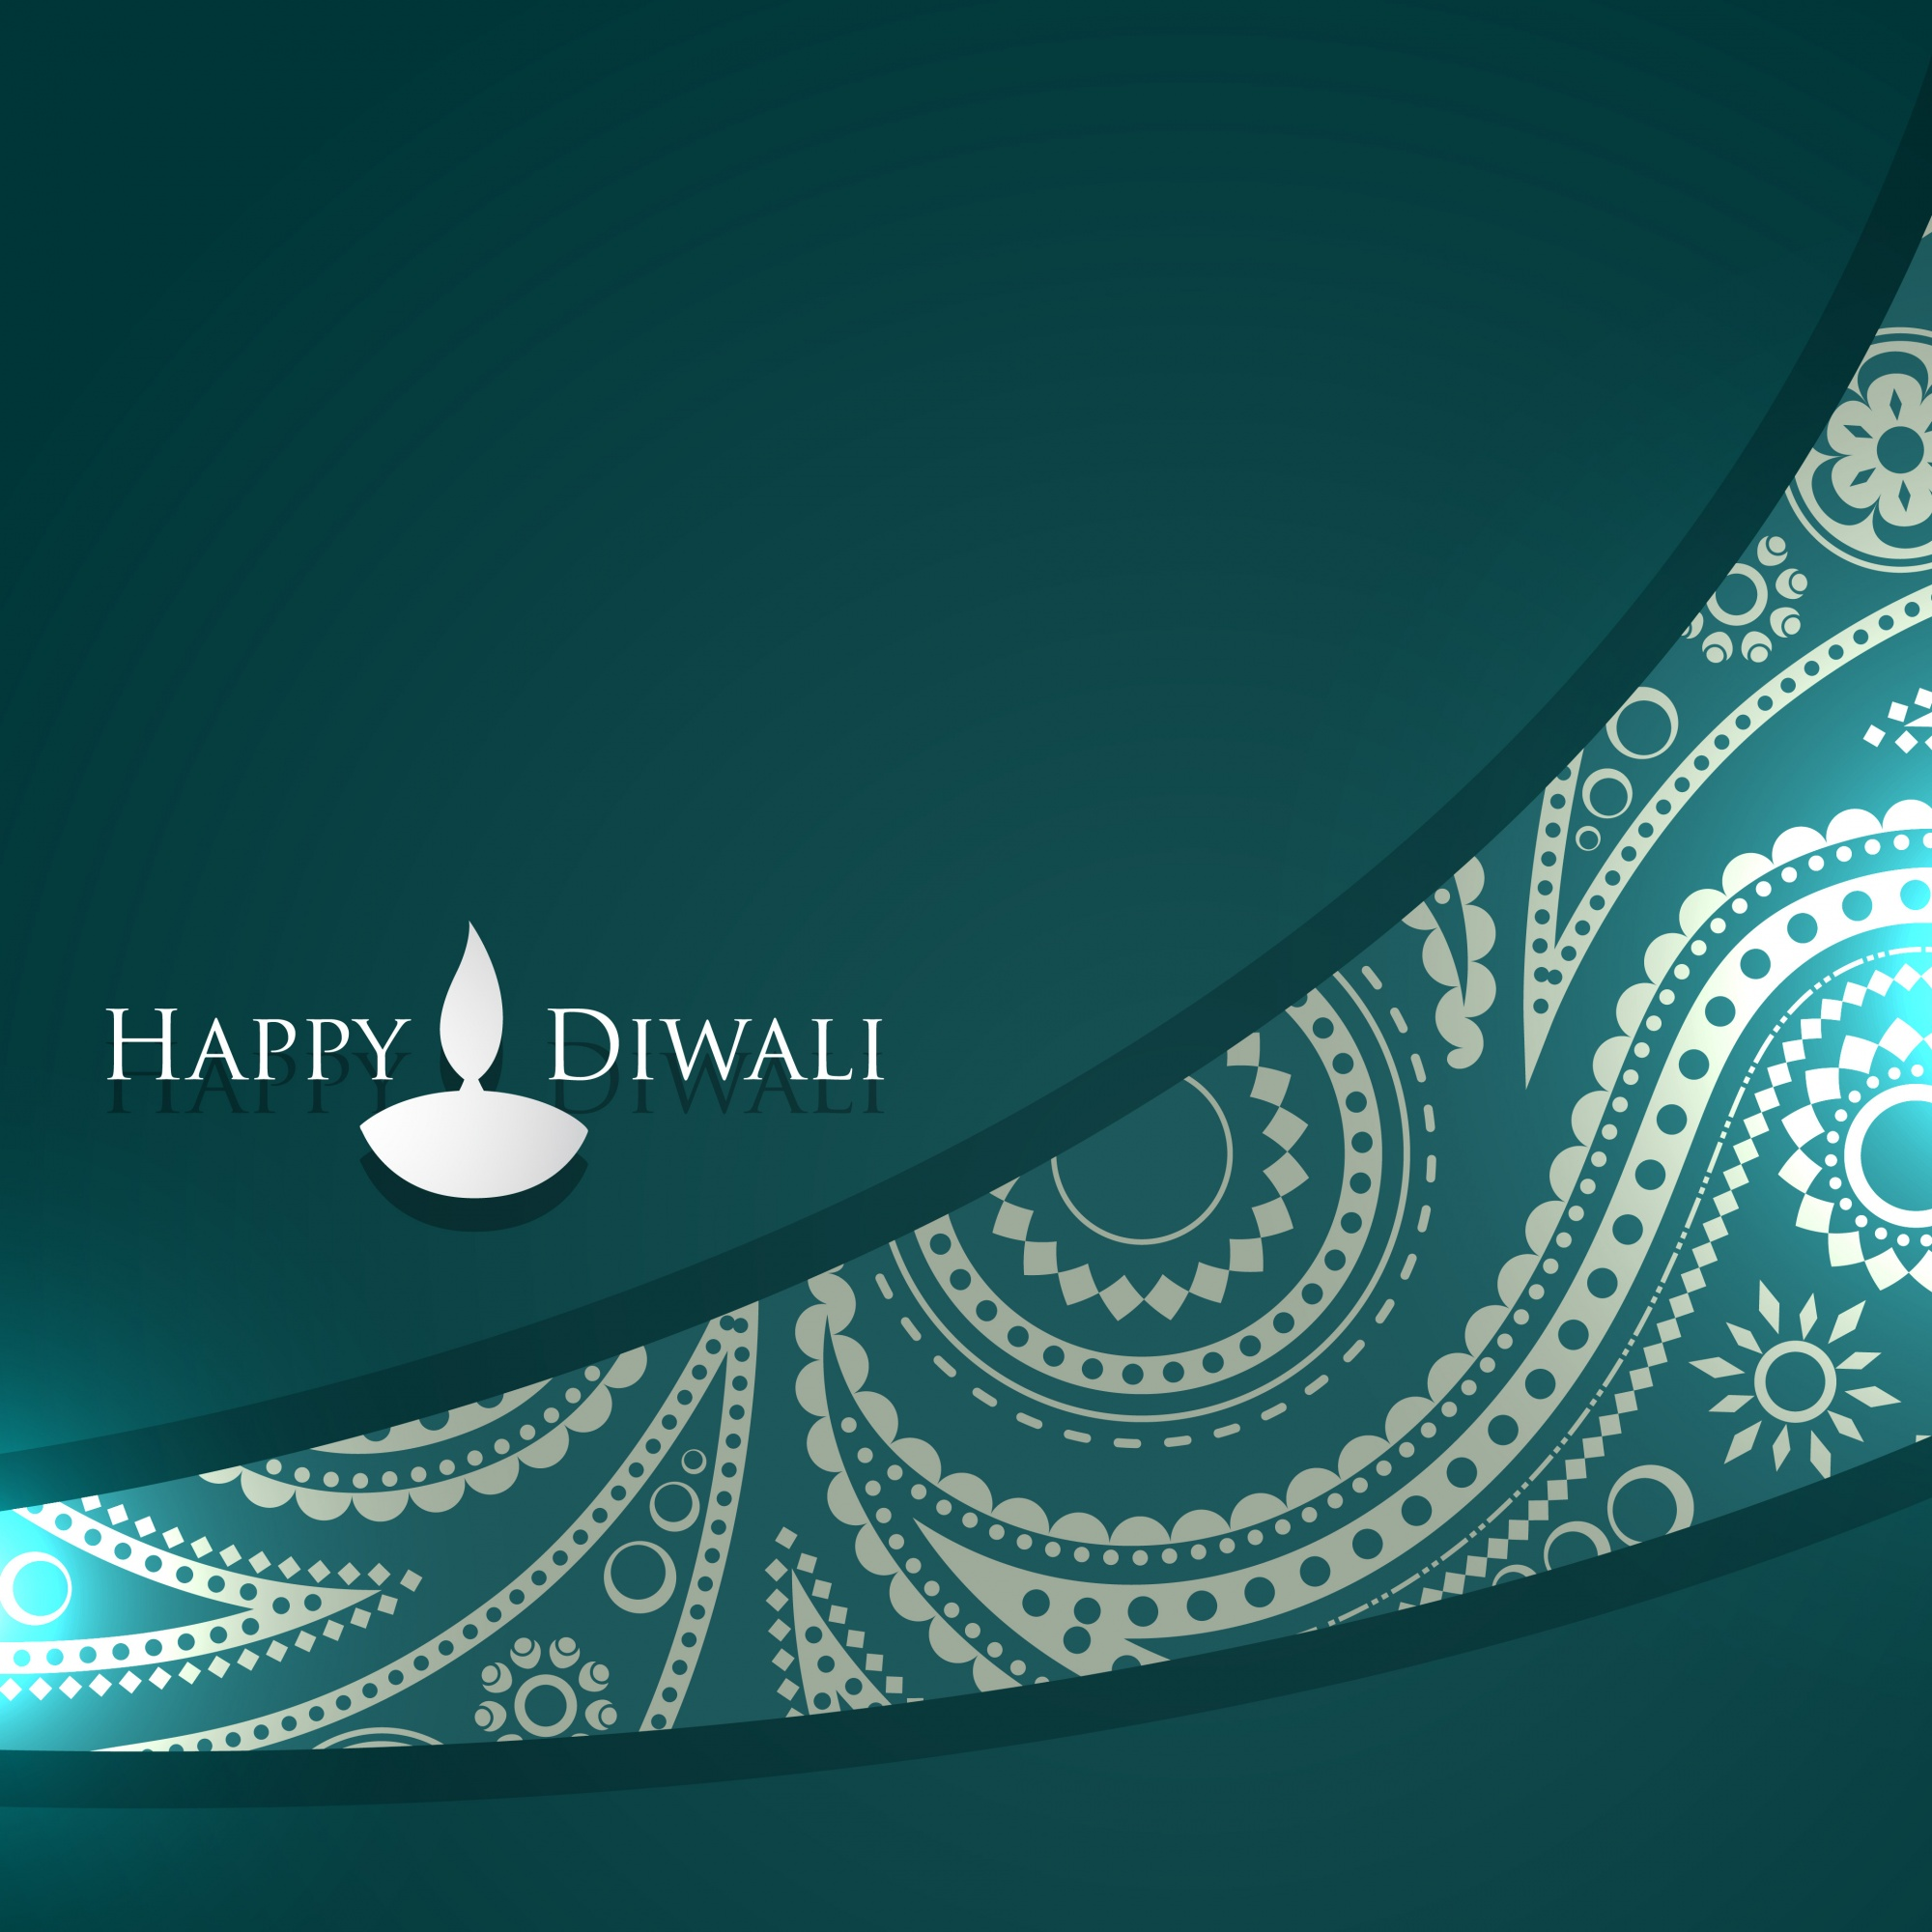 Ornamental design for diwali festival